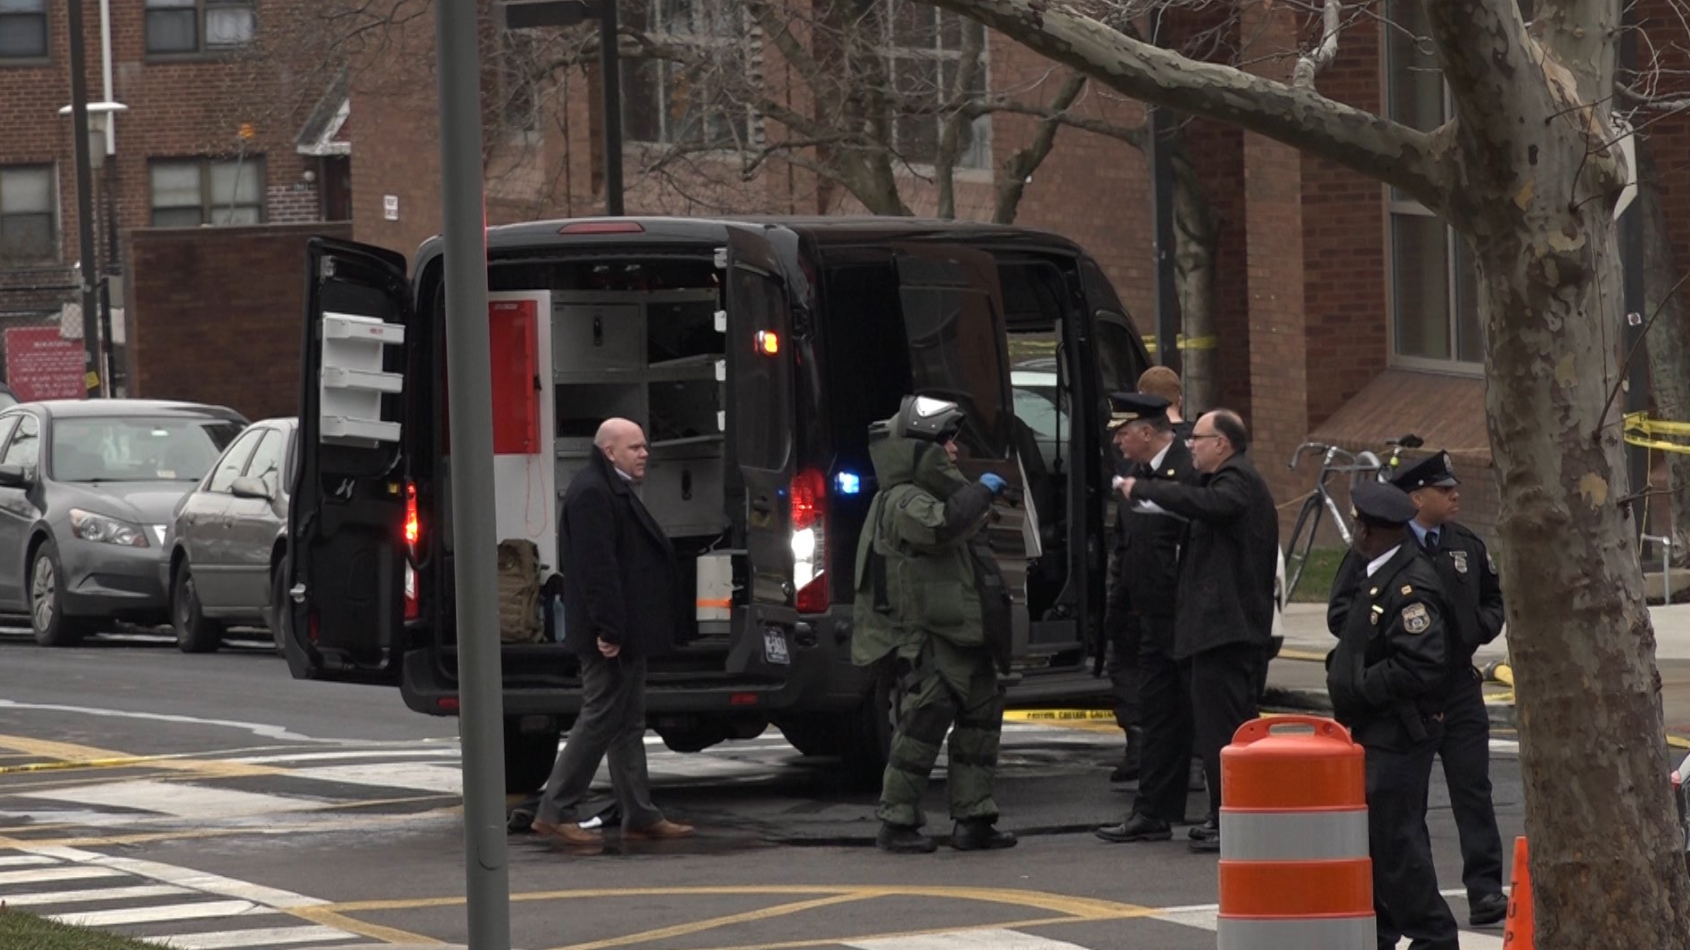 Philadelphia Bomb Squad Disposes of Suspicious Package Outside College of Engineering Building